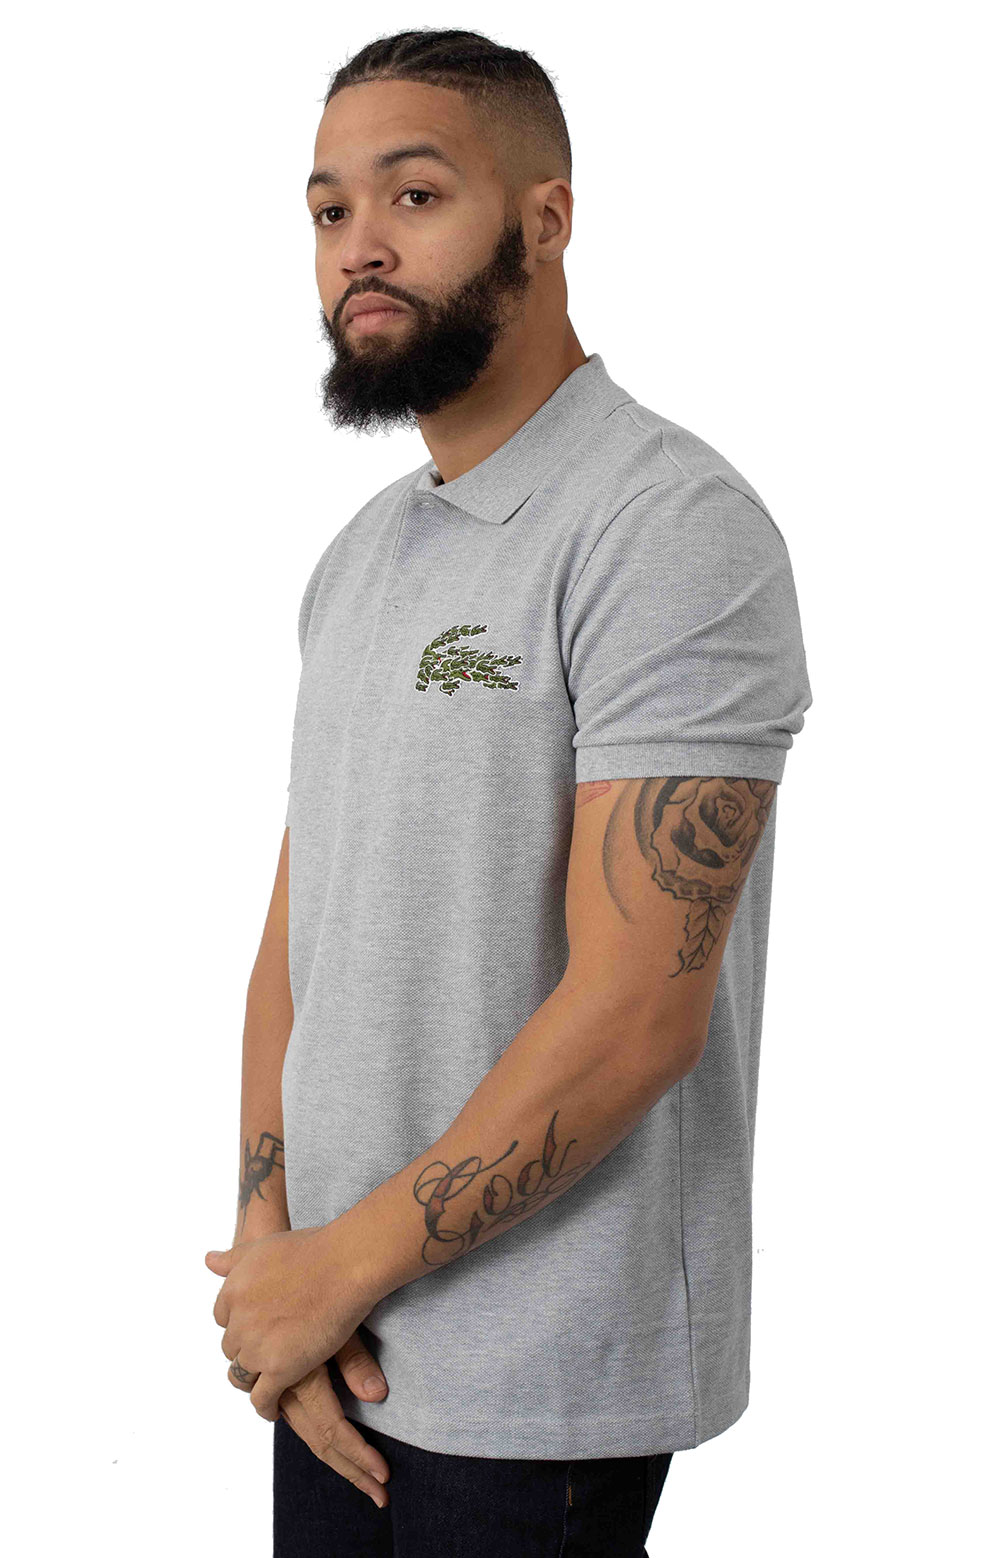 Regular Fit Croc Magic Cotton Pique Polo - Grey Chine 2